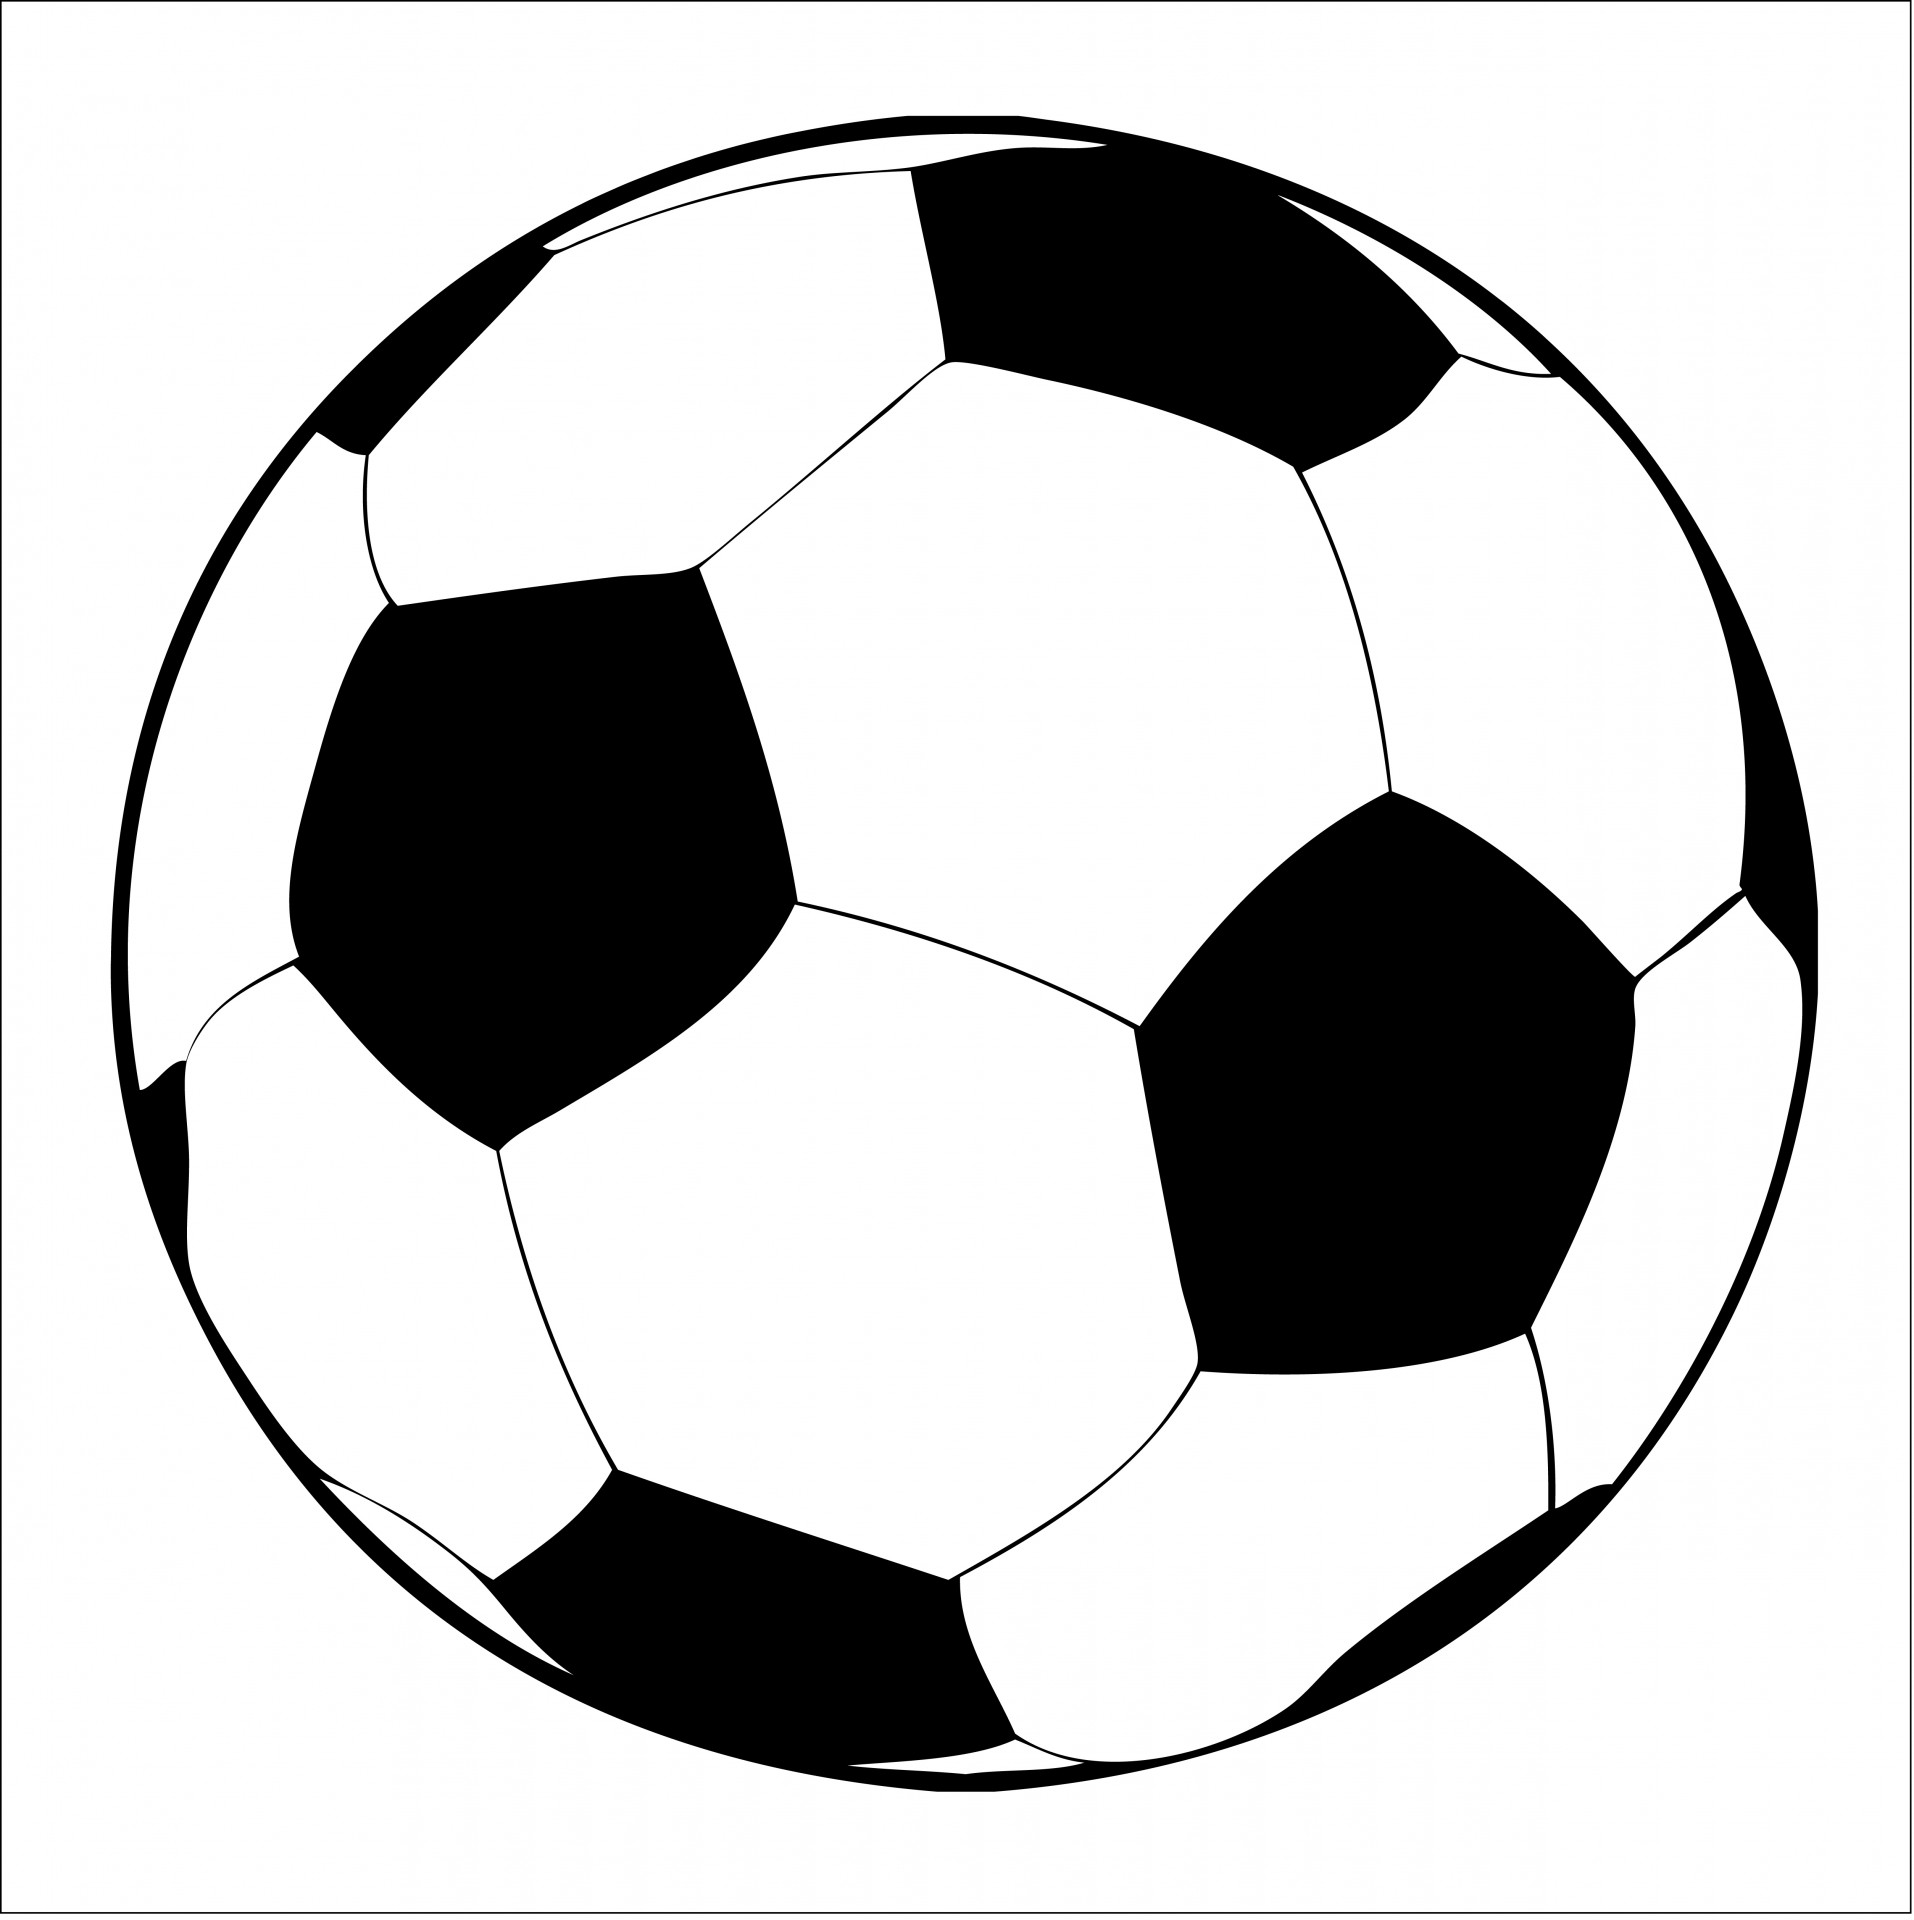 Clipart ball. Soccer free stock photo